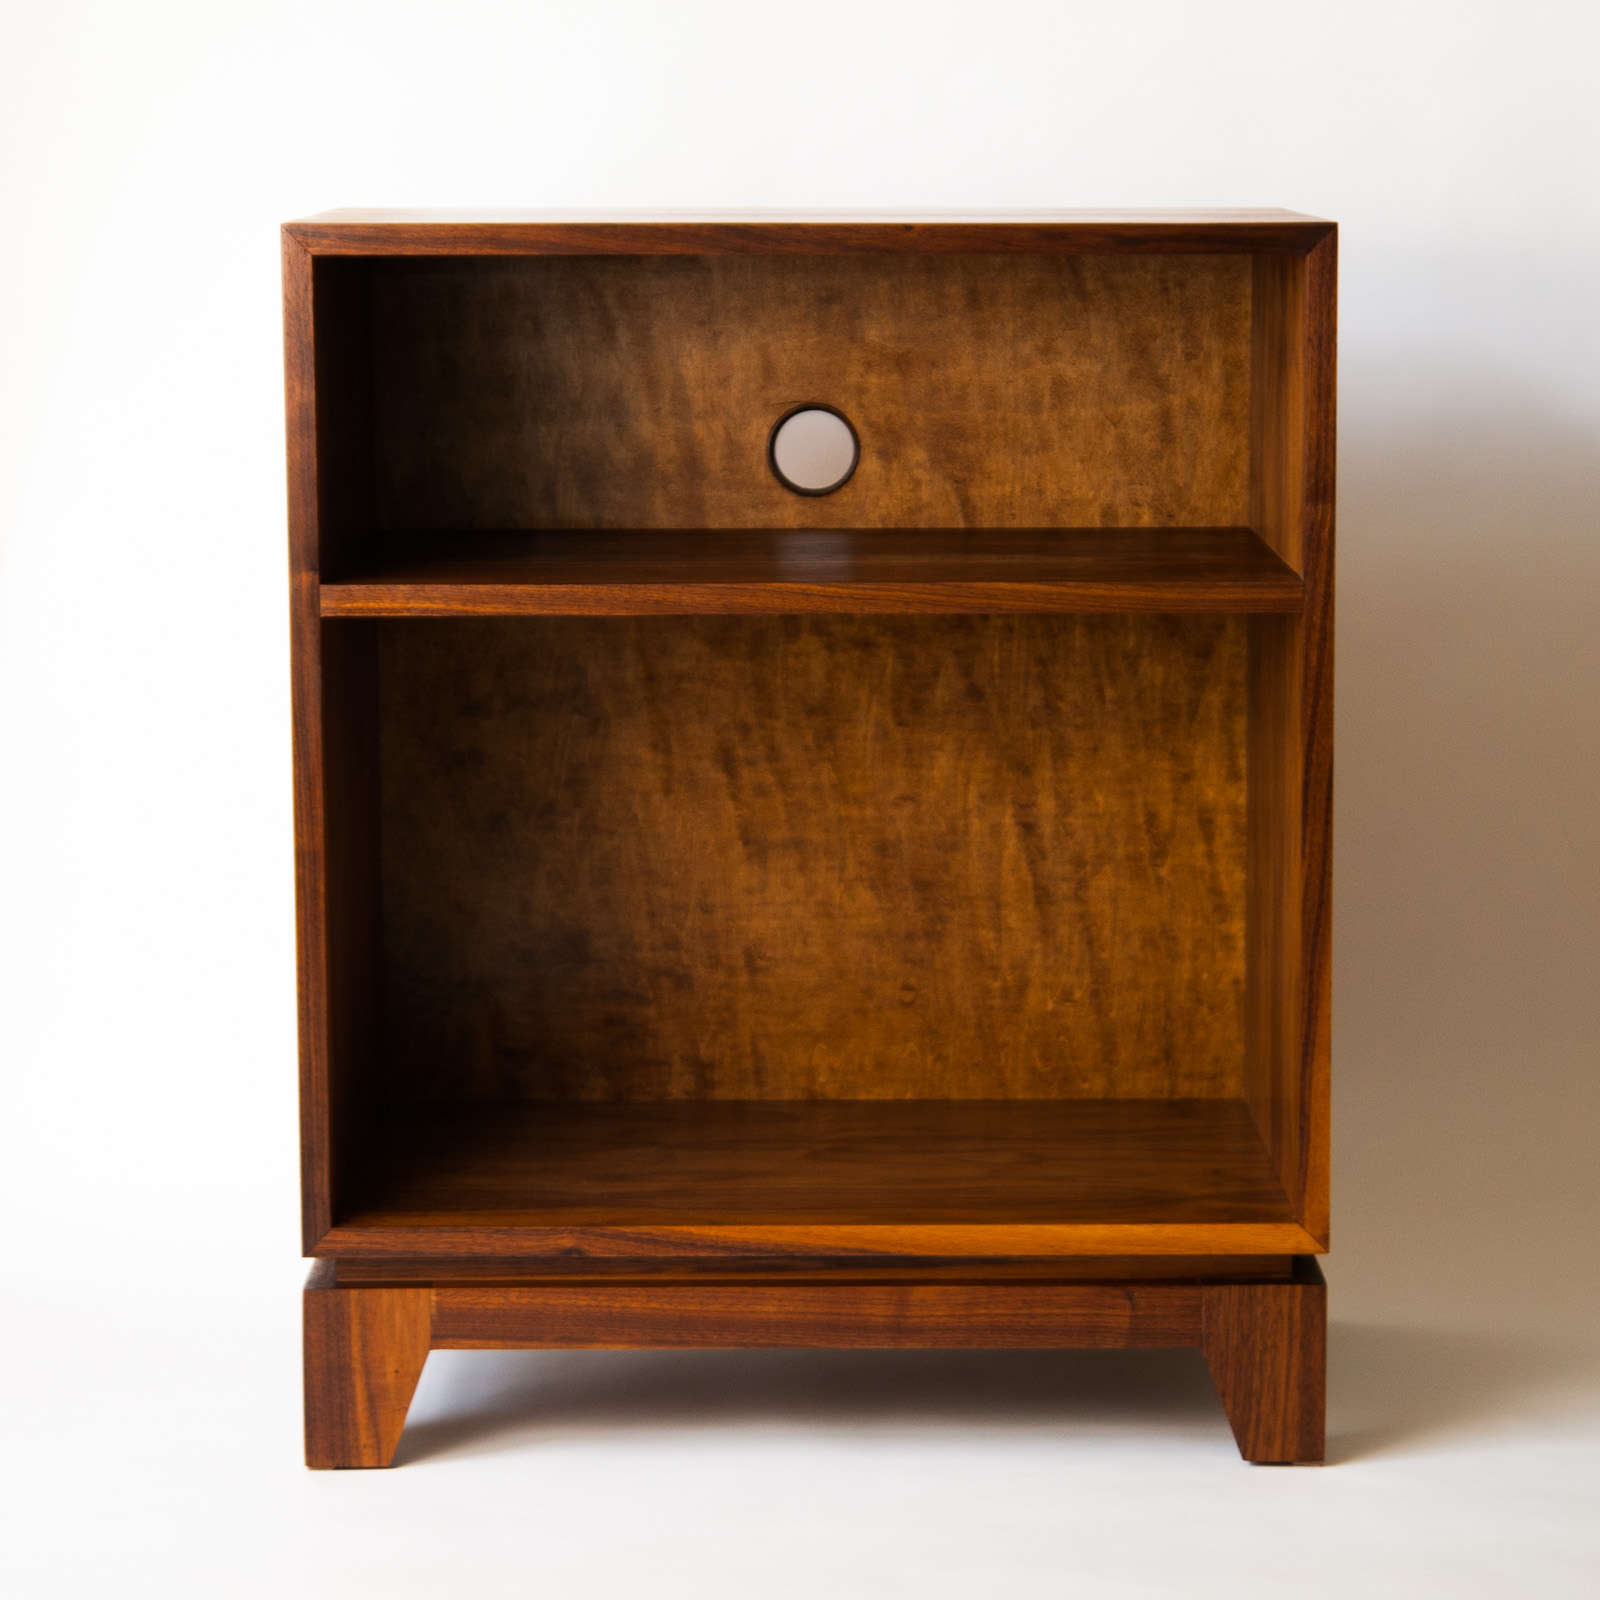 product stereo tables danish cabinet teakstereocabinet modern design retrocraft collection